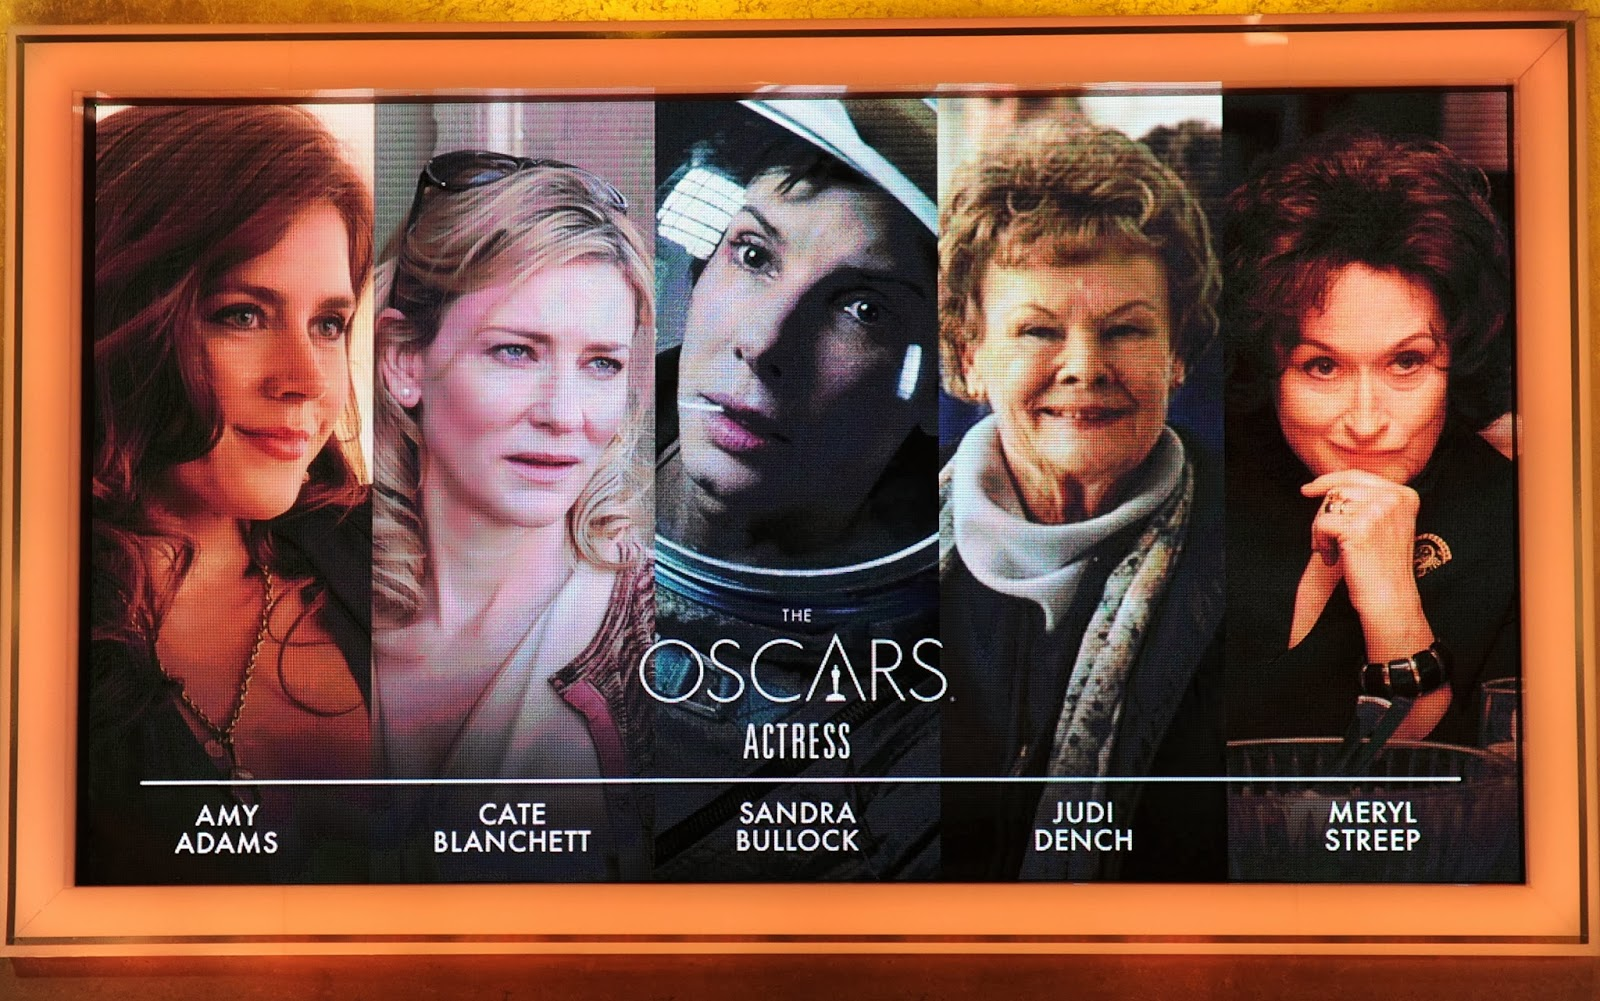 Best Supporting, Actor, Oscar logo, Oscar, Actress, Director, Actress, Supporting Actress, Hollywood, California, 86th Academy, Awards, Nominees, Announce, Hollywood, Movie, Film,